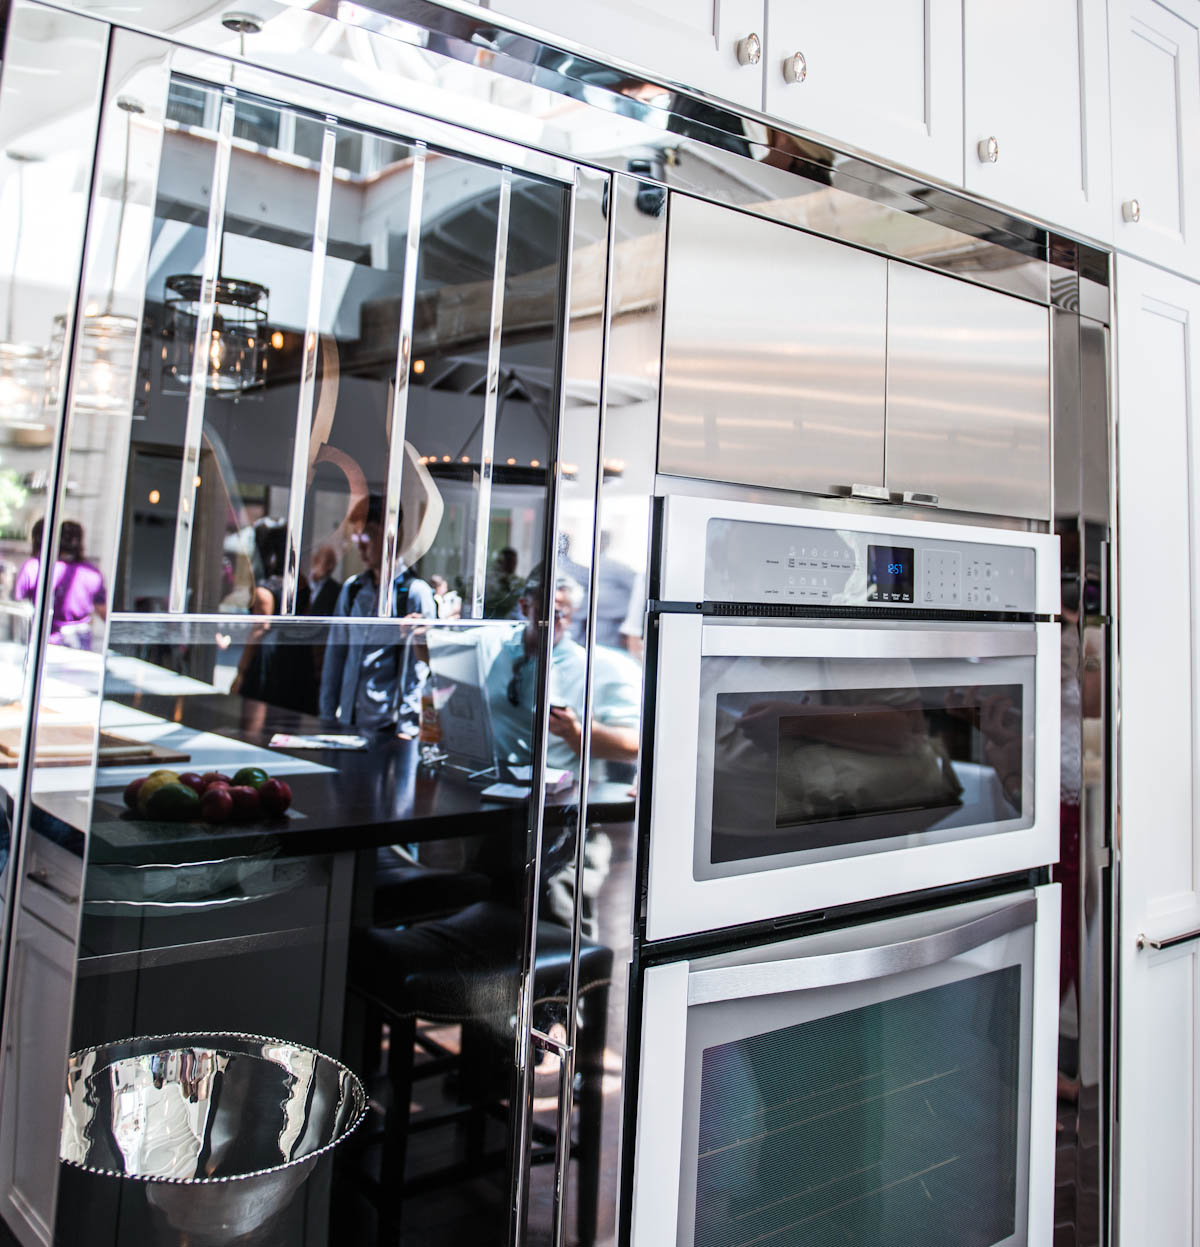 House Beautiful Kitchen Of The Year: House Beautiful Kitchen Of The Year 2012 Koty-17.jpg